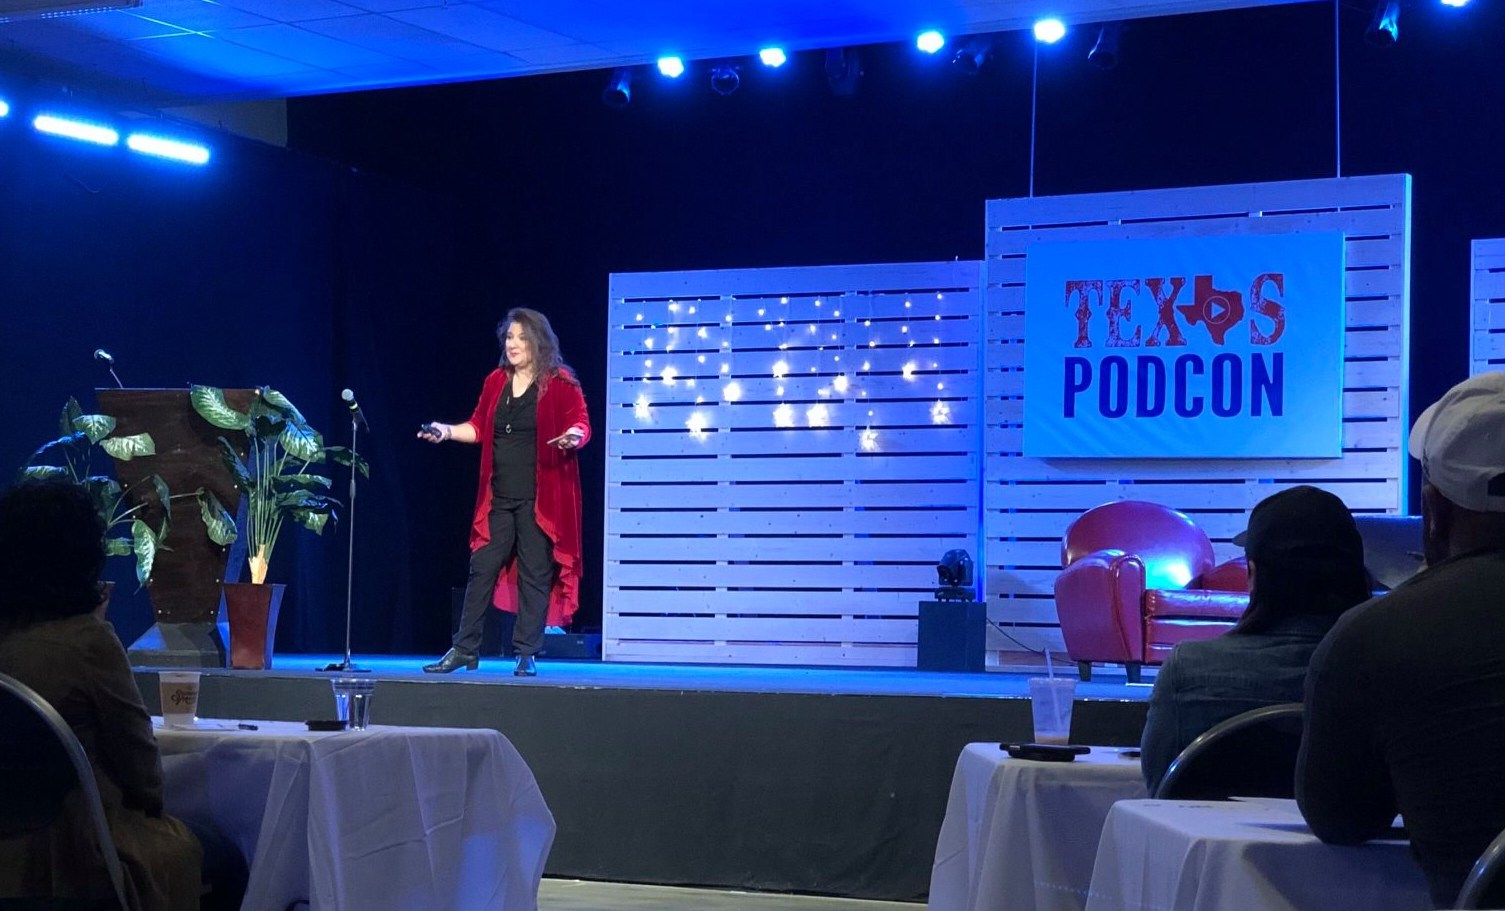 Jennifer Navarrete speaking on stage at Texas Podcast Conference in 2019